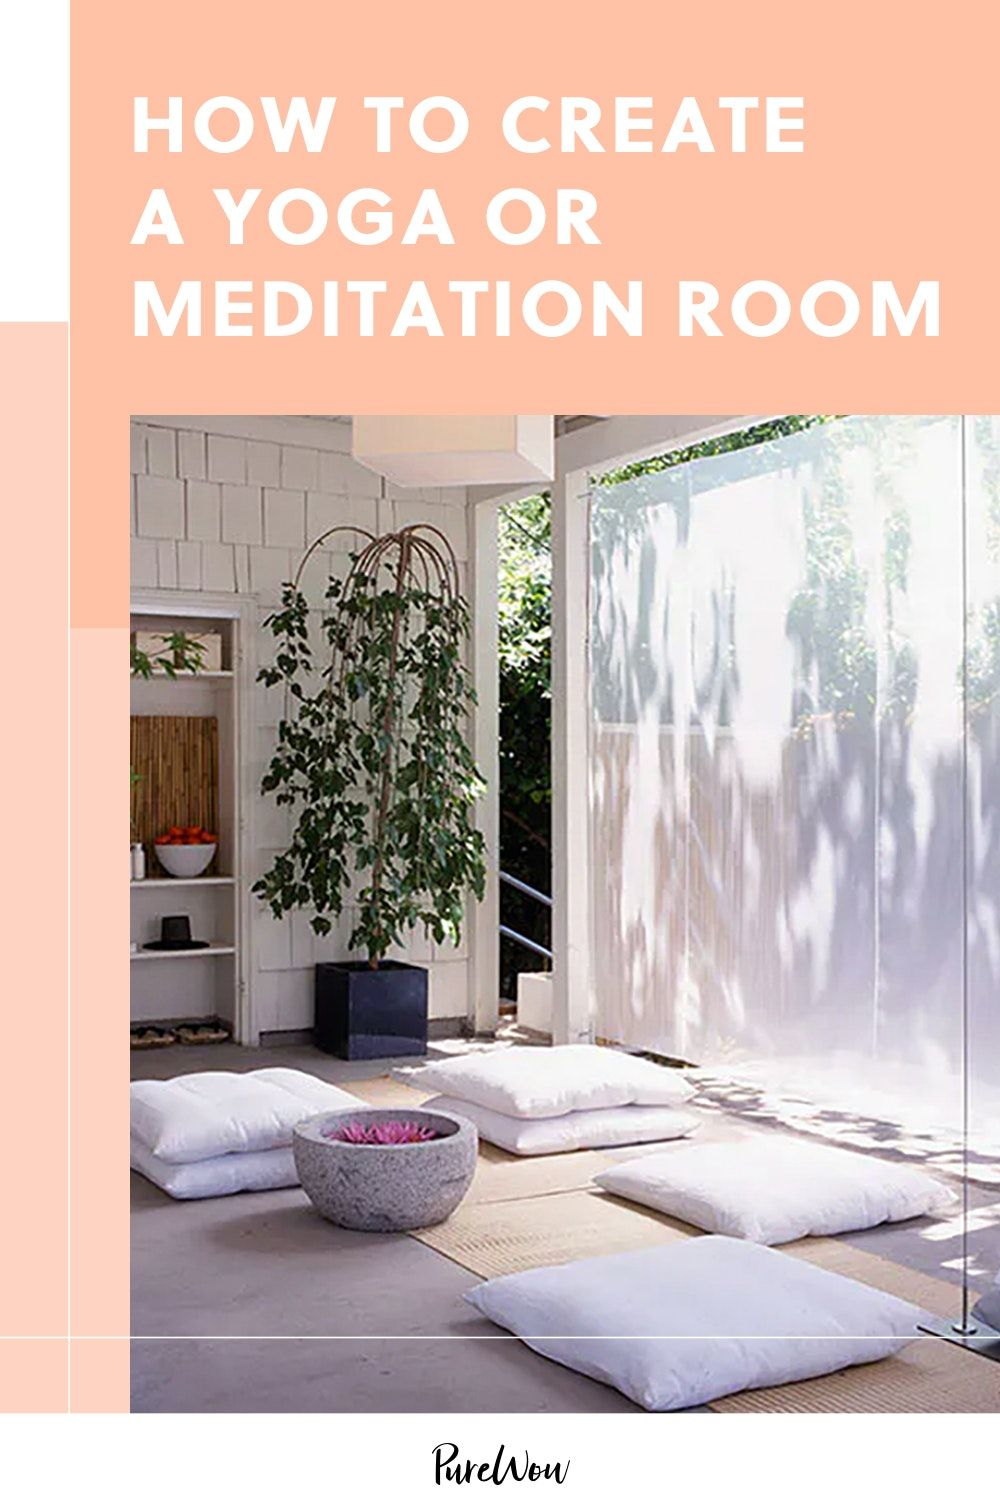 How to Create a Yoga or Meditation Room (Even If You Have Zero Space)